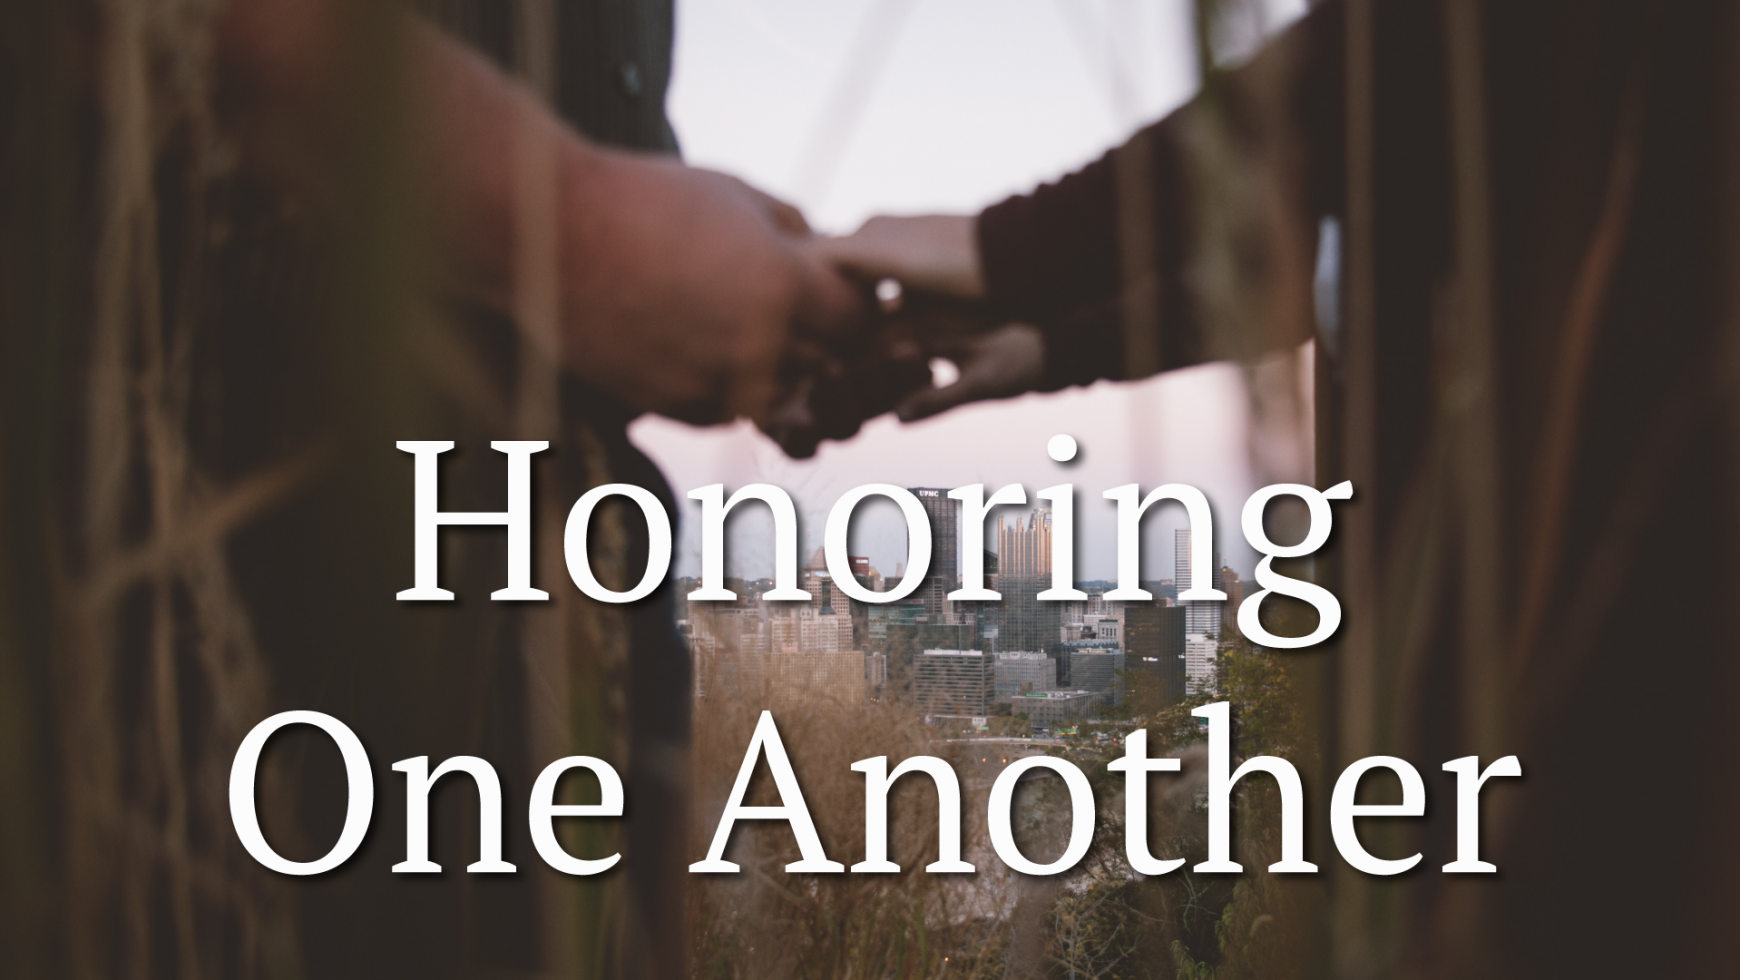 Honoring One Another